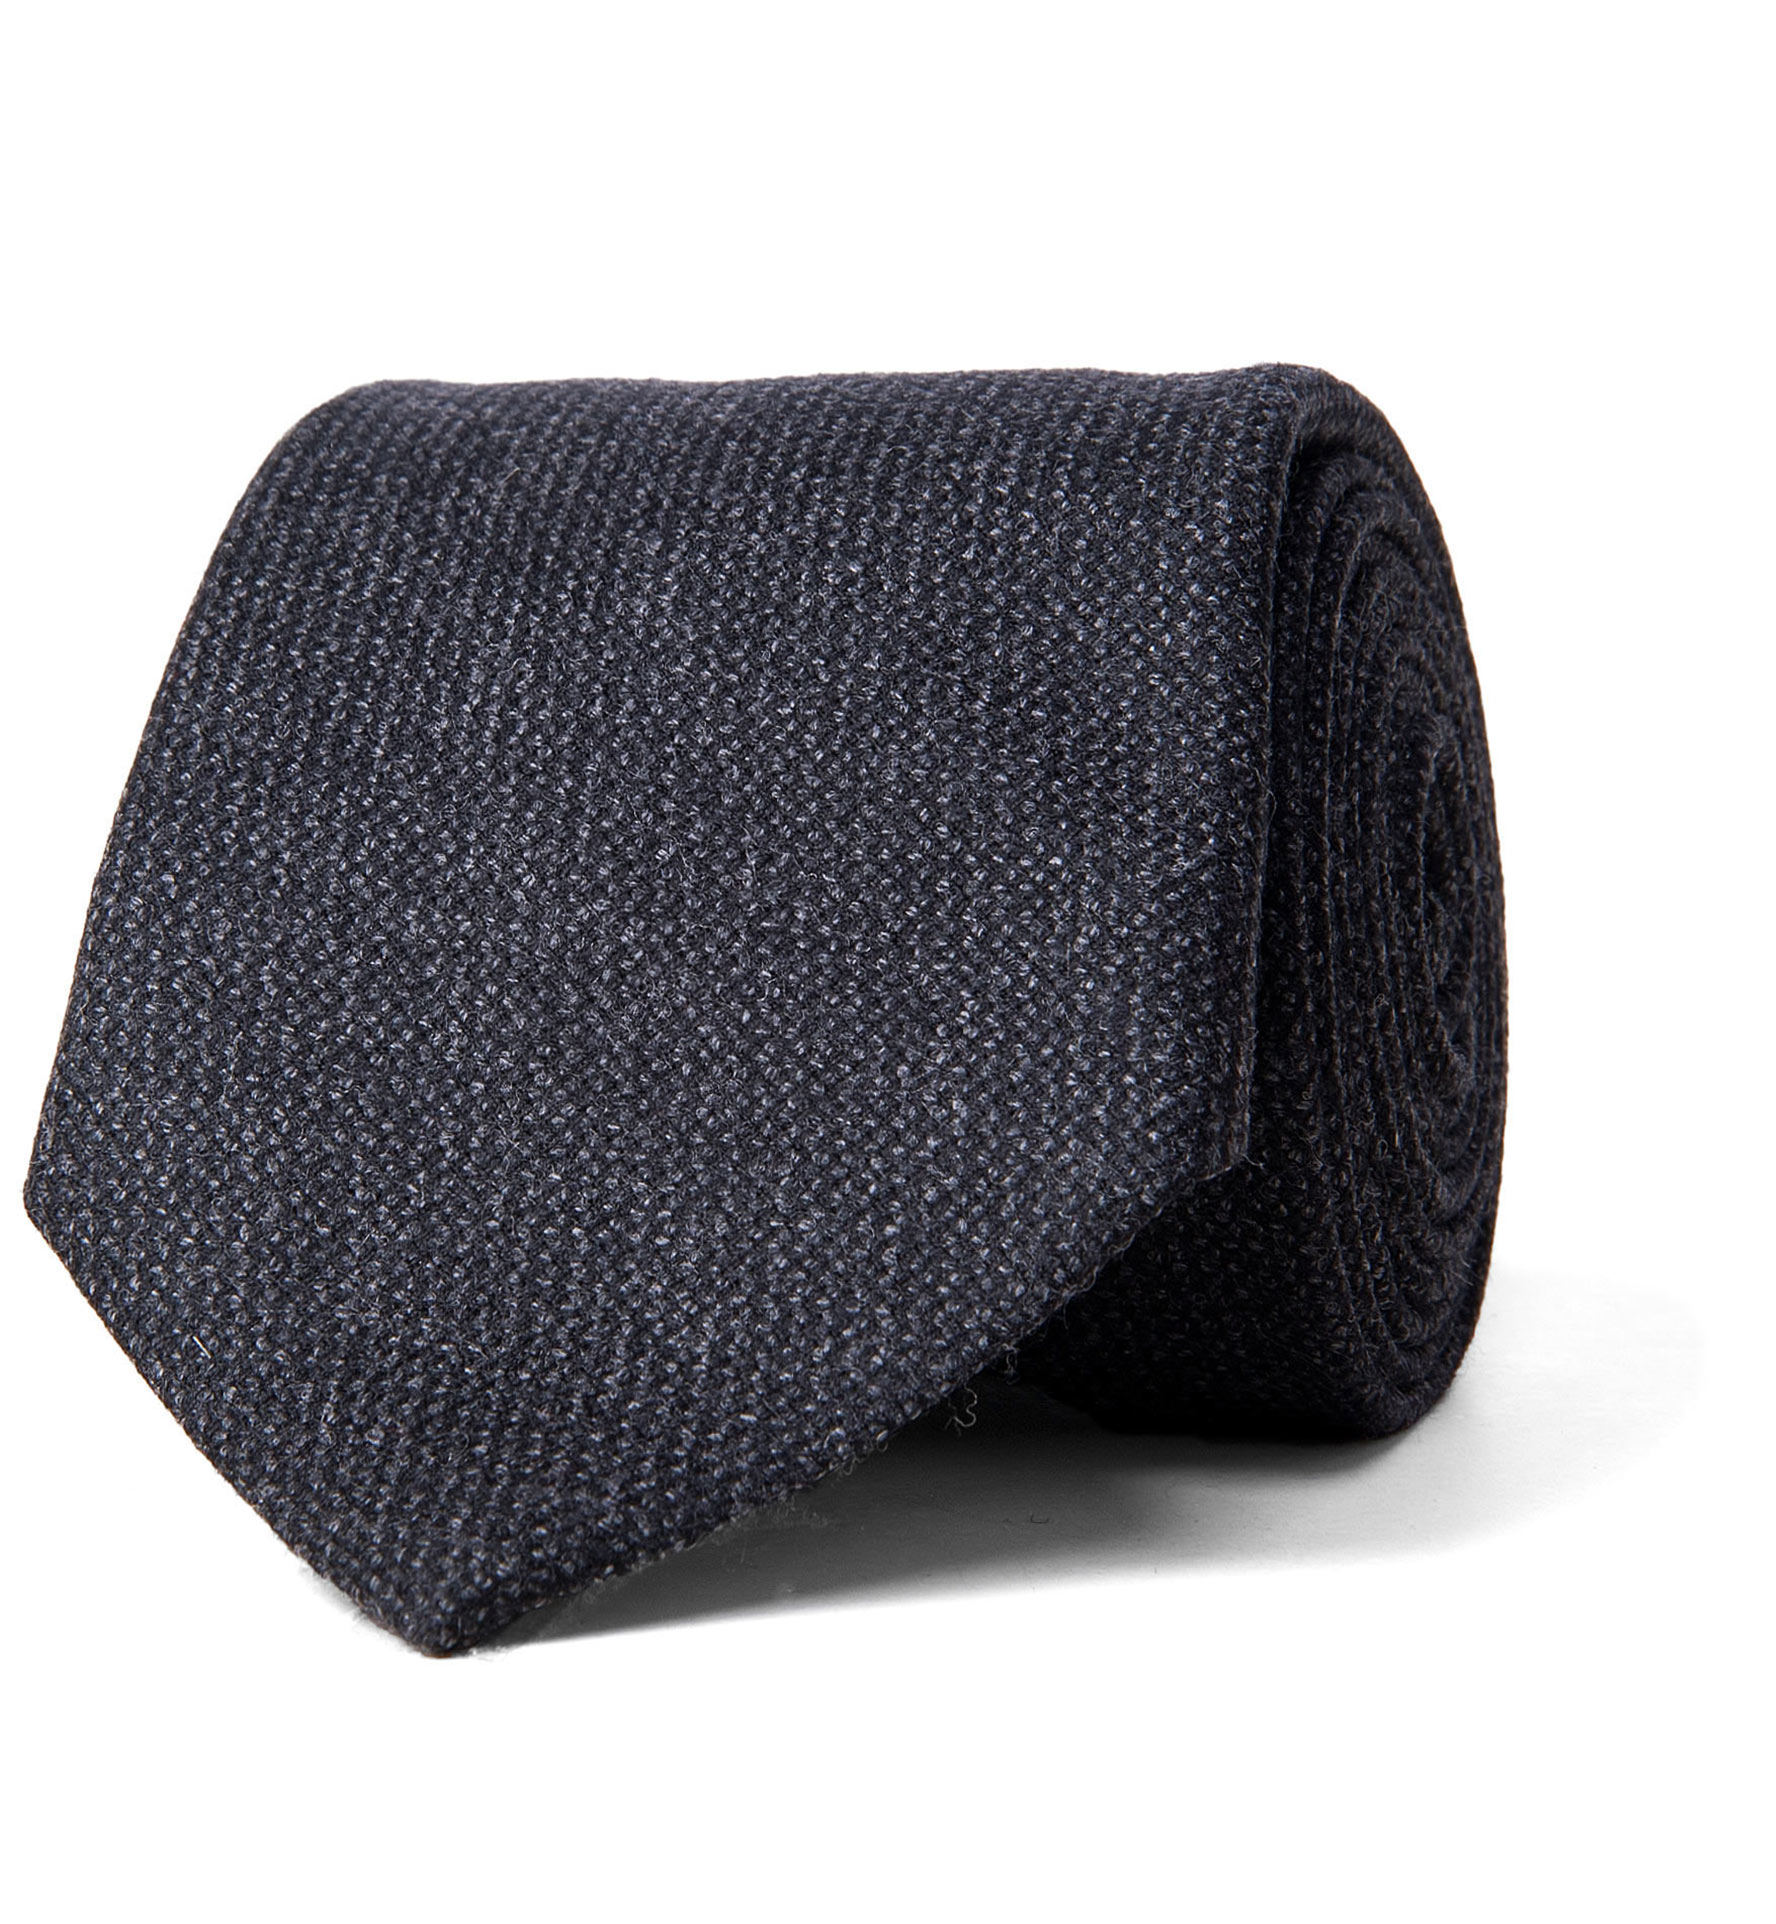 Zoom Image of Charcoal Solid Cashmere Tie